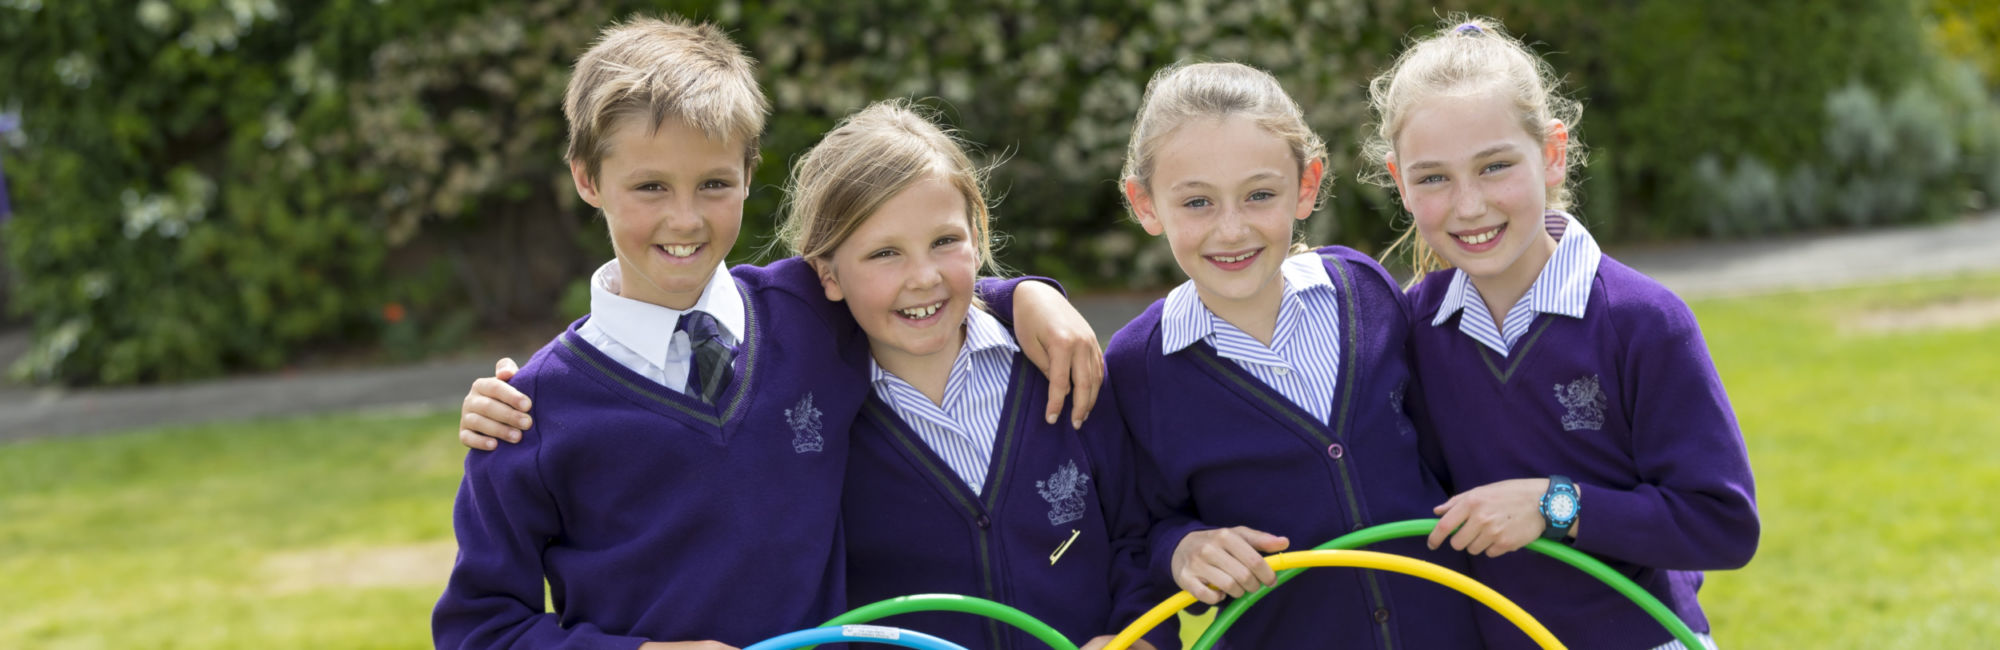 wycliffe prep students posing with hula hoops